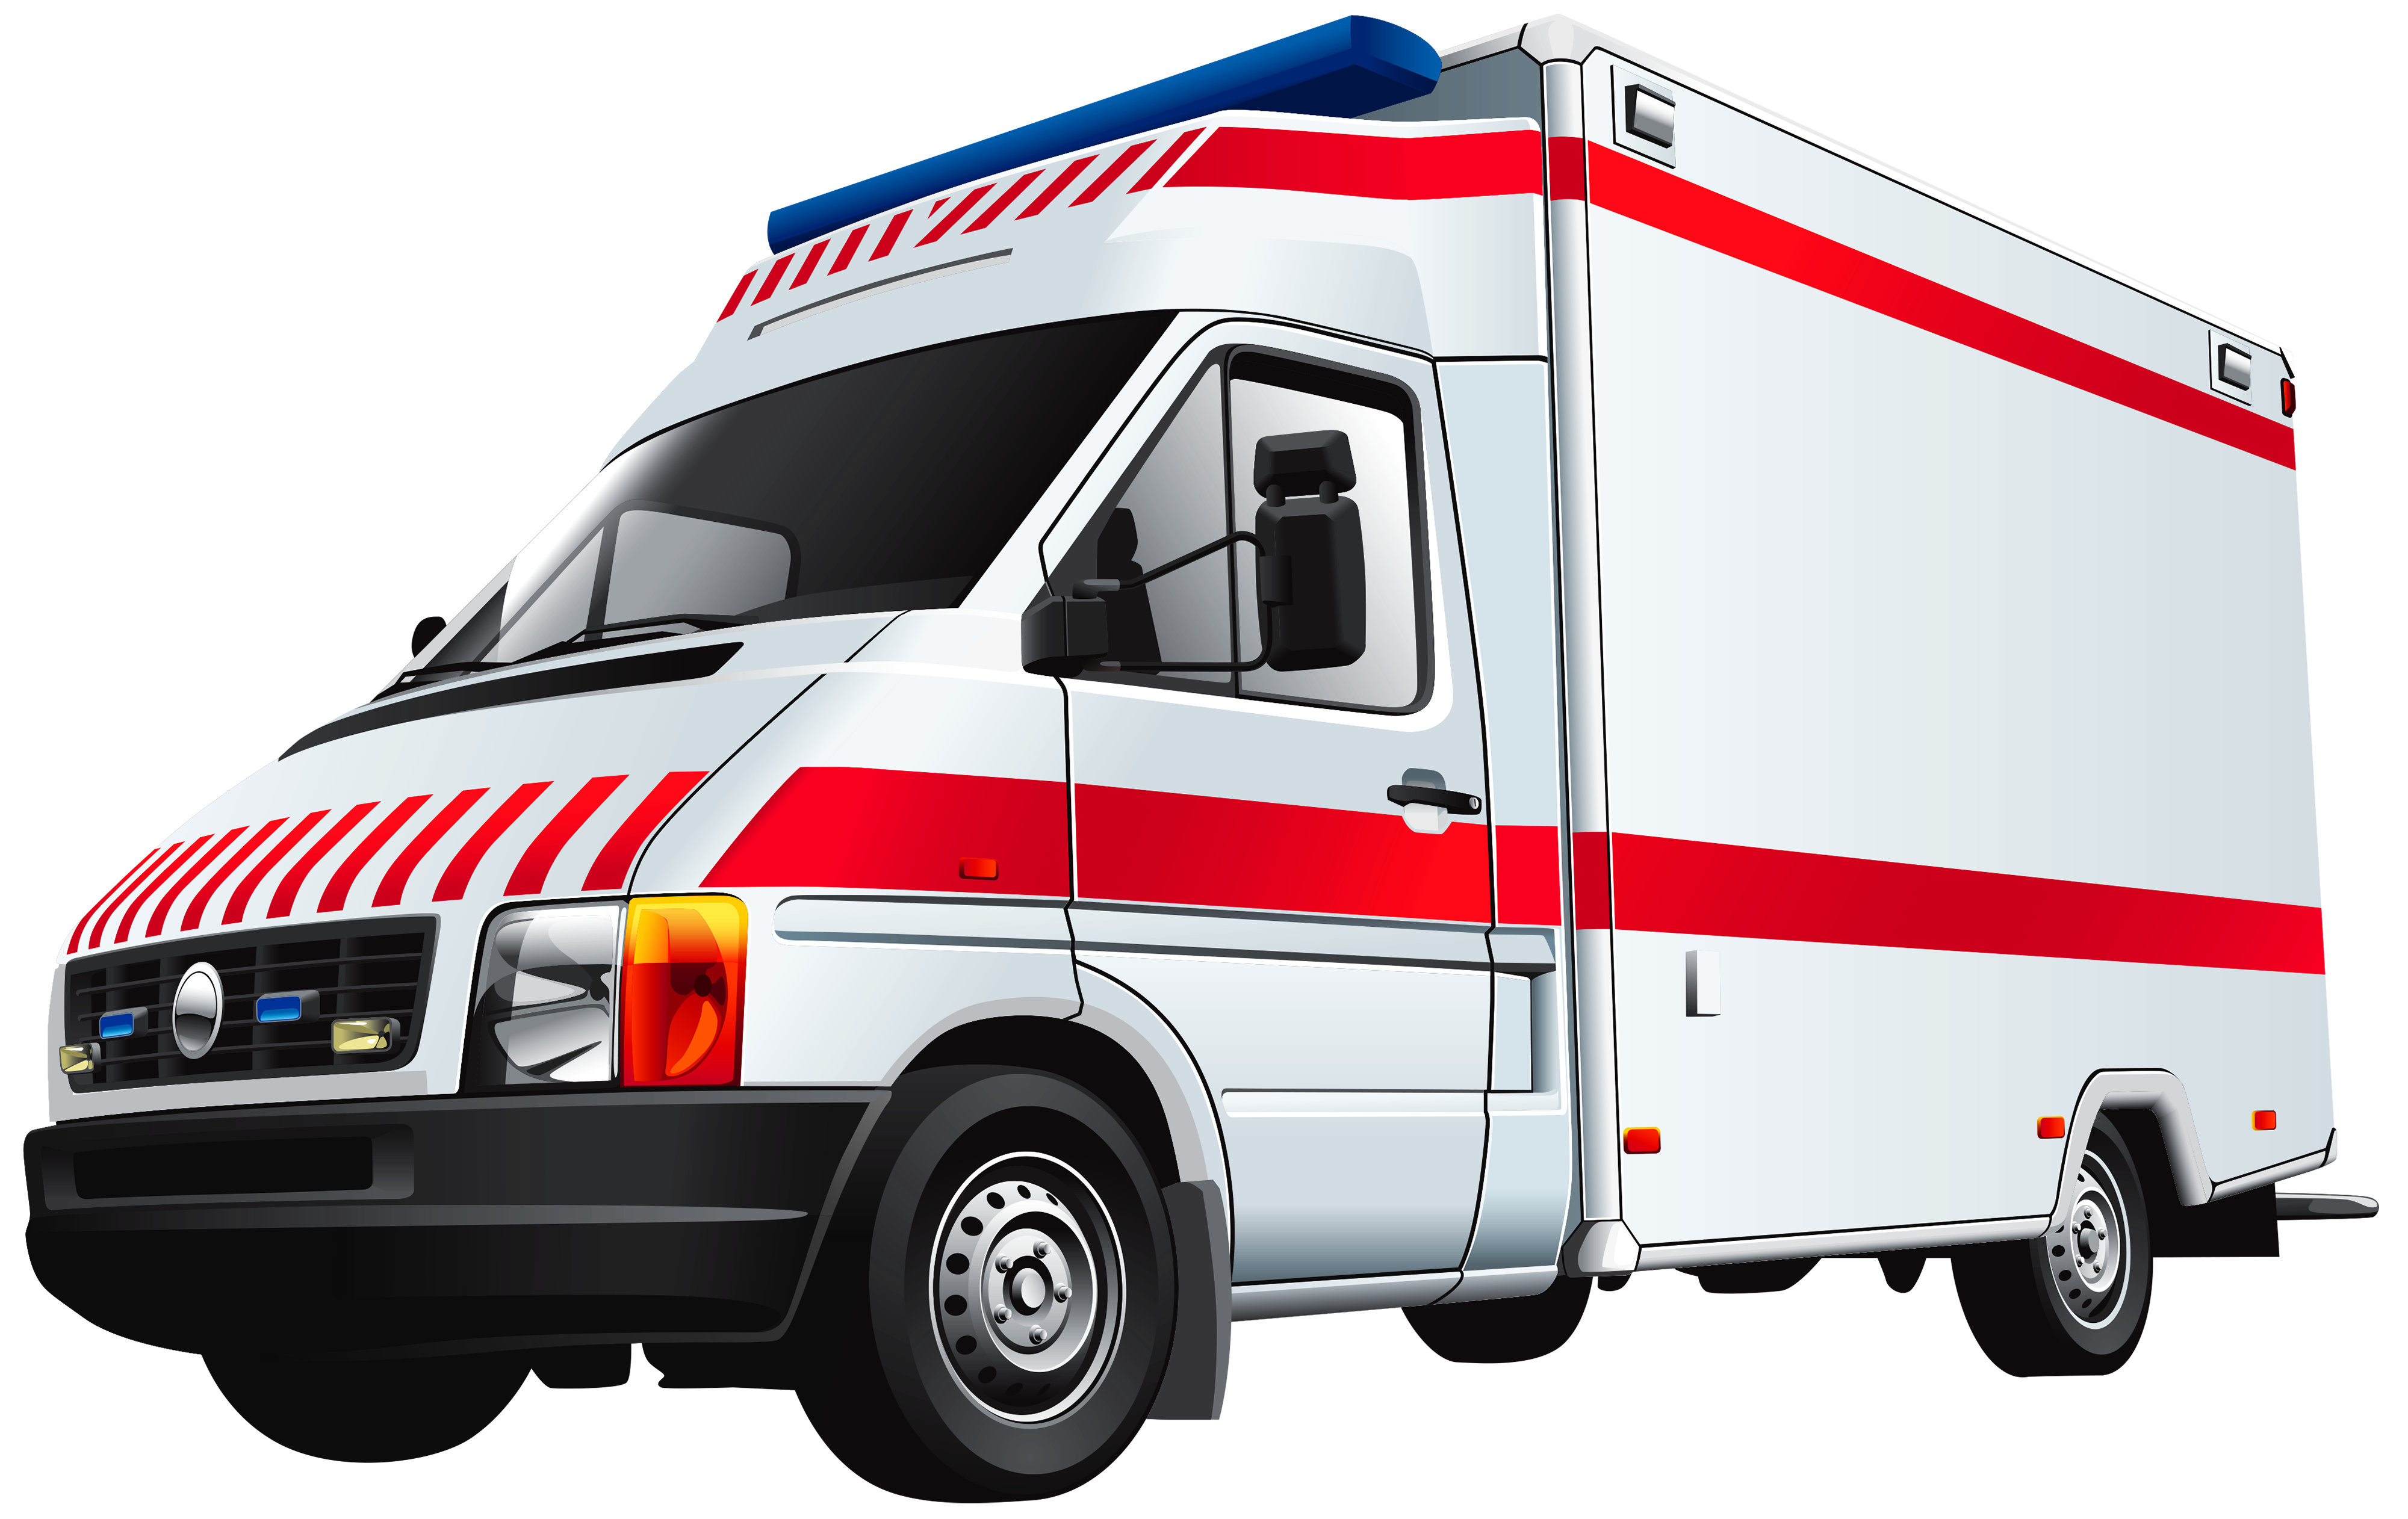 Top view of a car clipart royalty free svg freeuse library Ambulance PNG Clip Art - Best WEB Clipart svg freeuse library